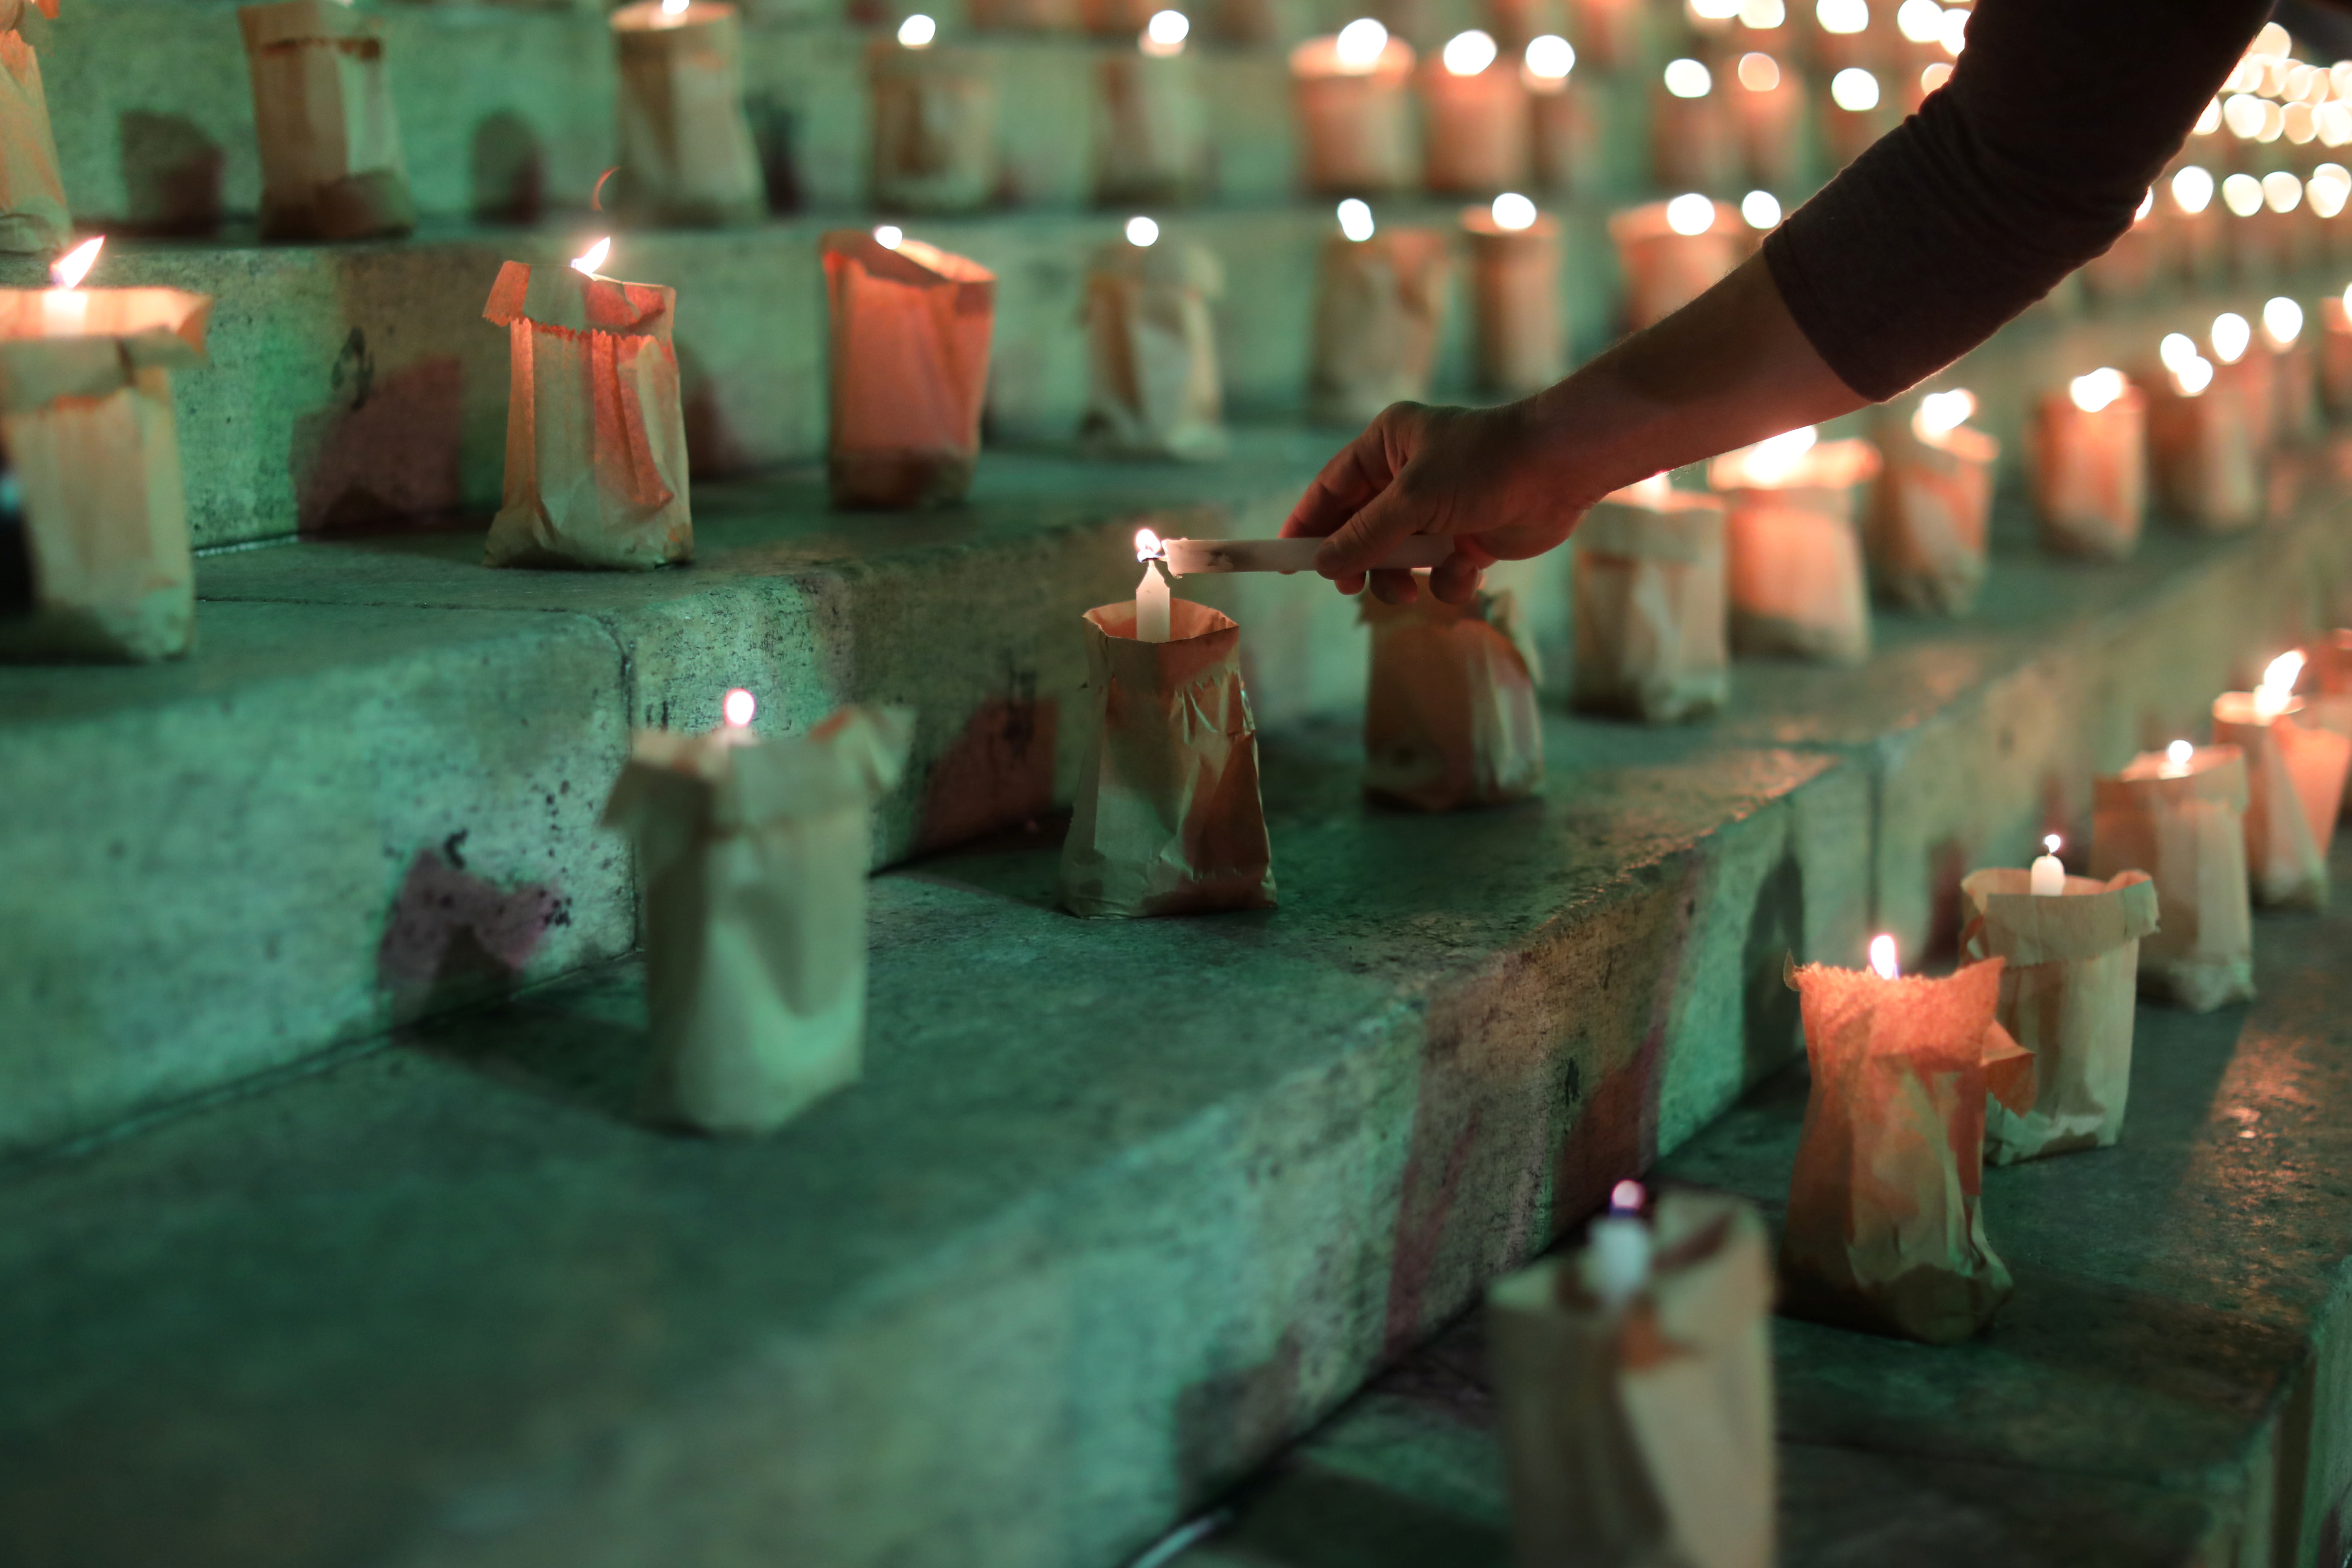 A person takes part in an event to light candles in honour of the 500,000 people who have died from the coronavirus disease (COVID-19) in Brazil, in Rio de Janeiro, Brazil, June 21, 2021. REUTERS/Pilar Olivares